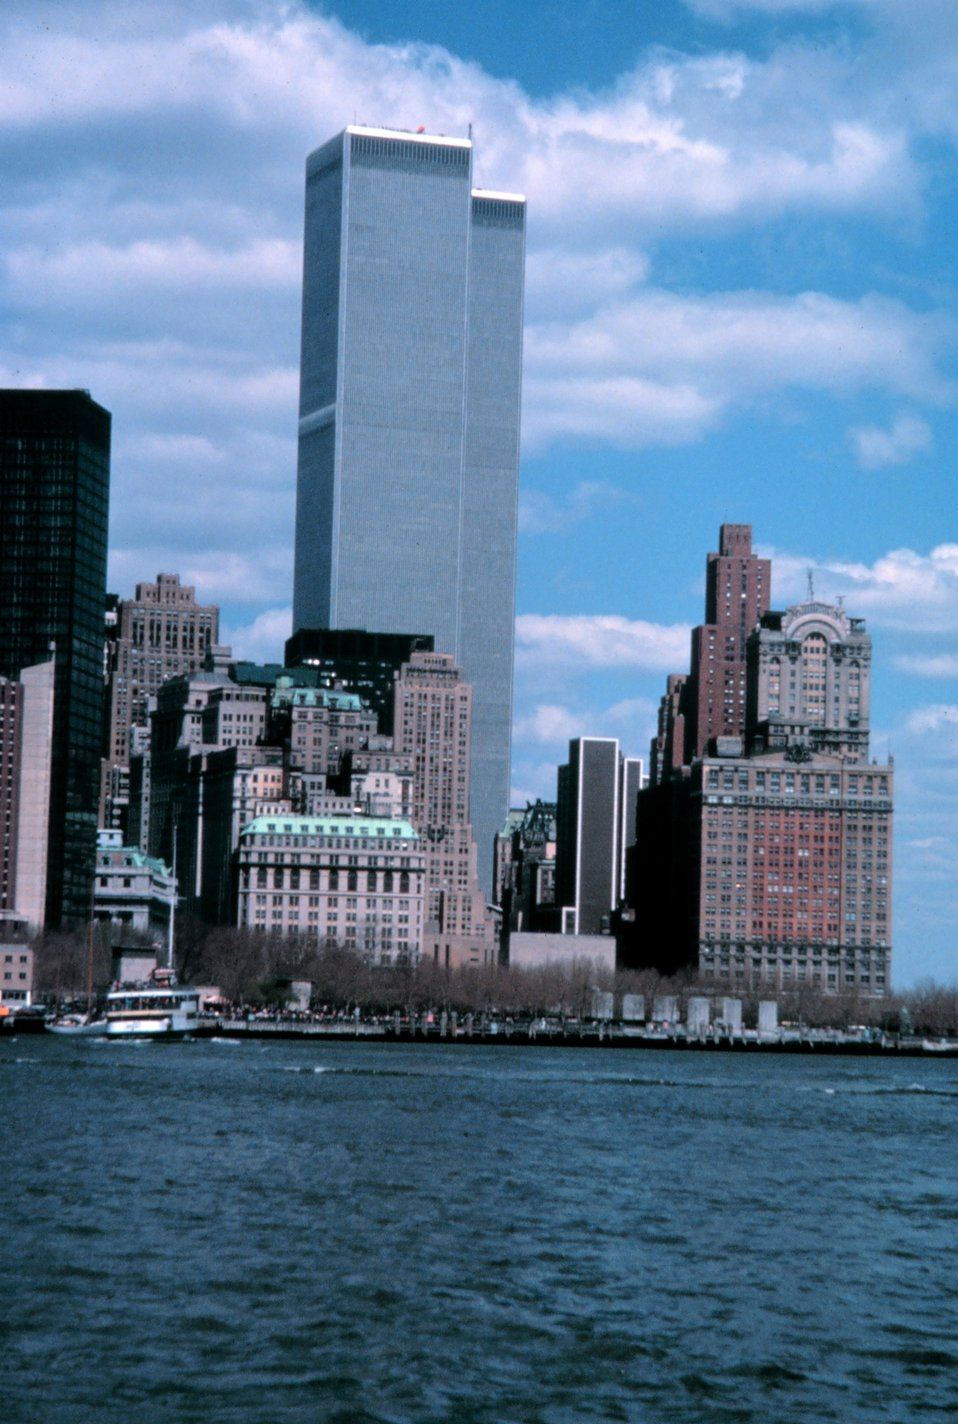 The World Trade Center as seen from the Governor's Island Ferry.